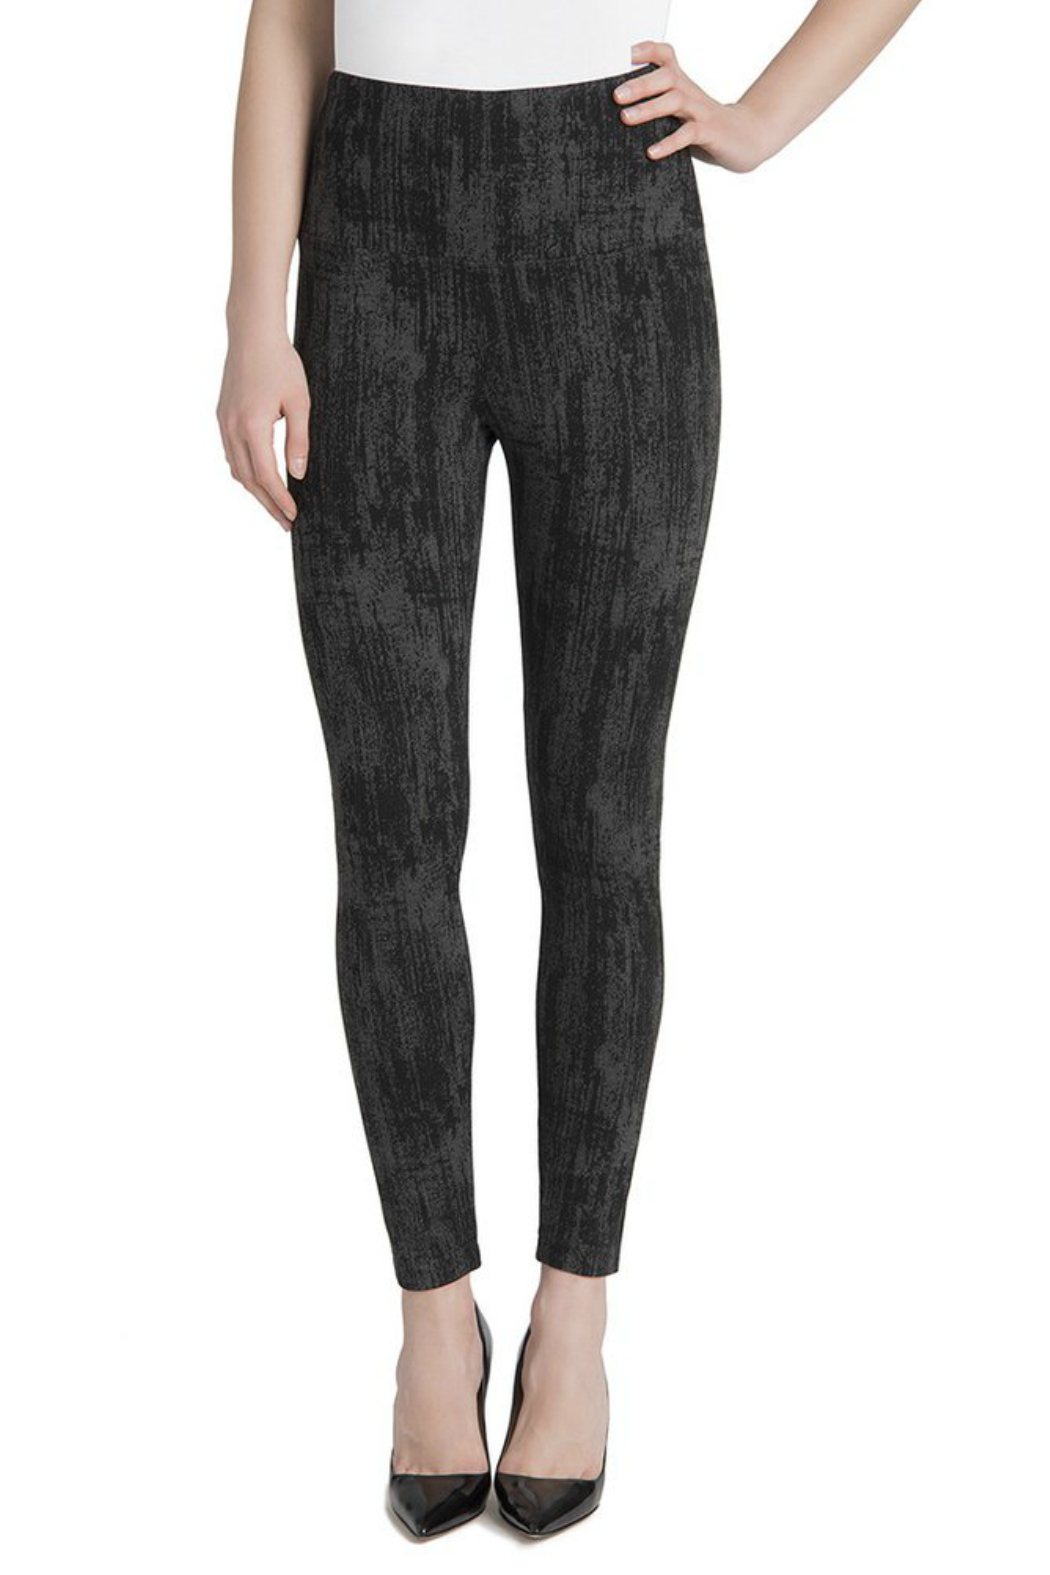 Lysse Center Seam Ponte Legging - Main Image